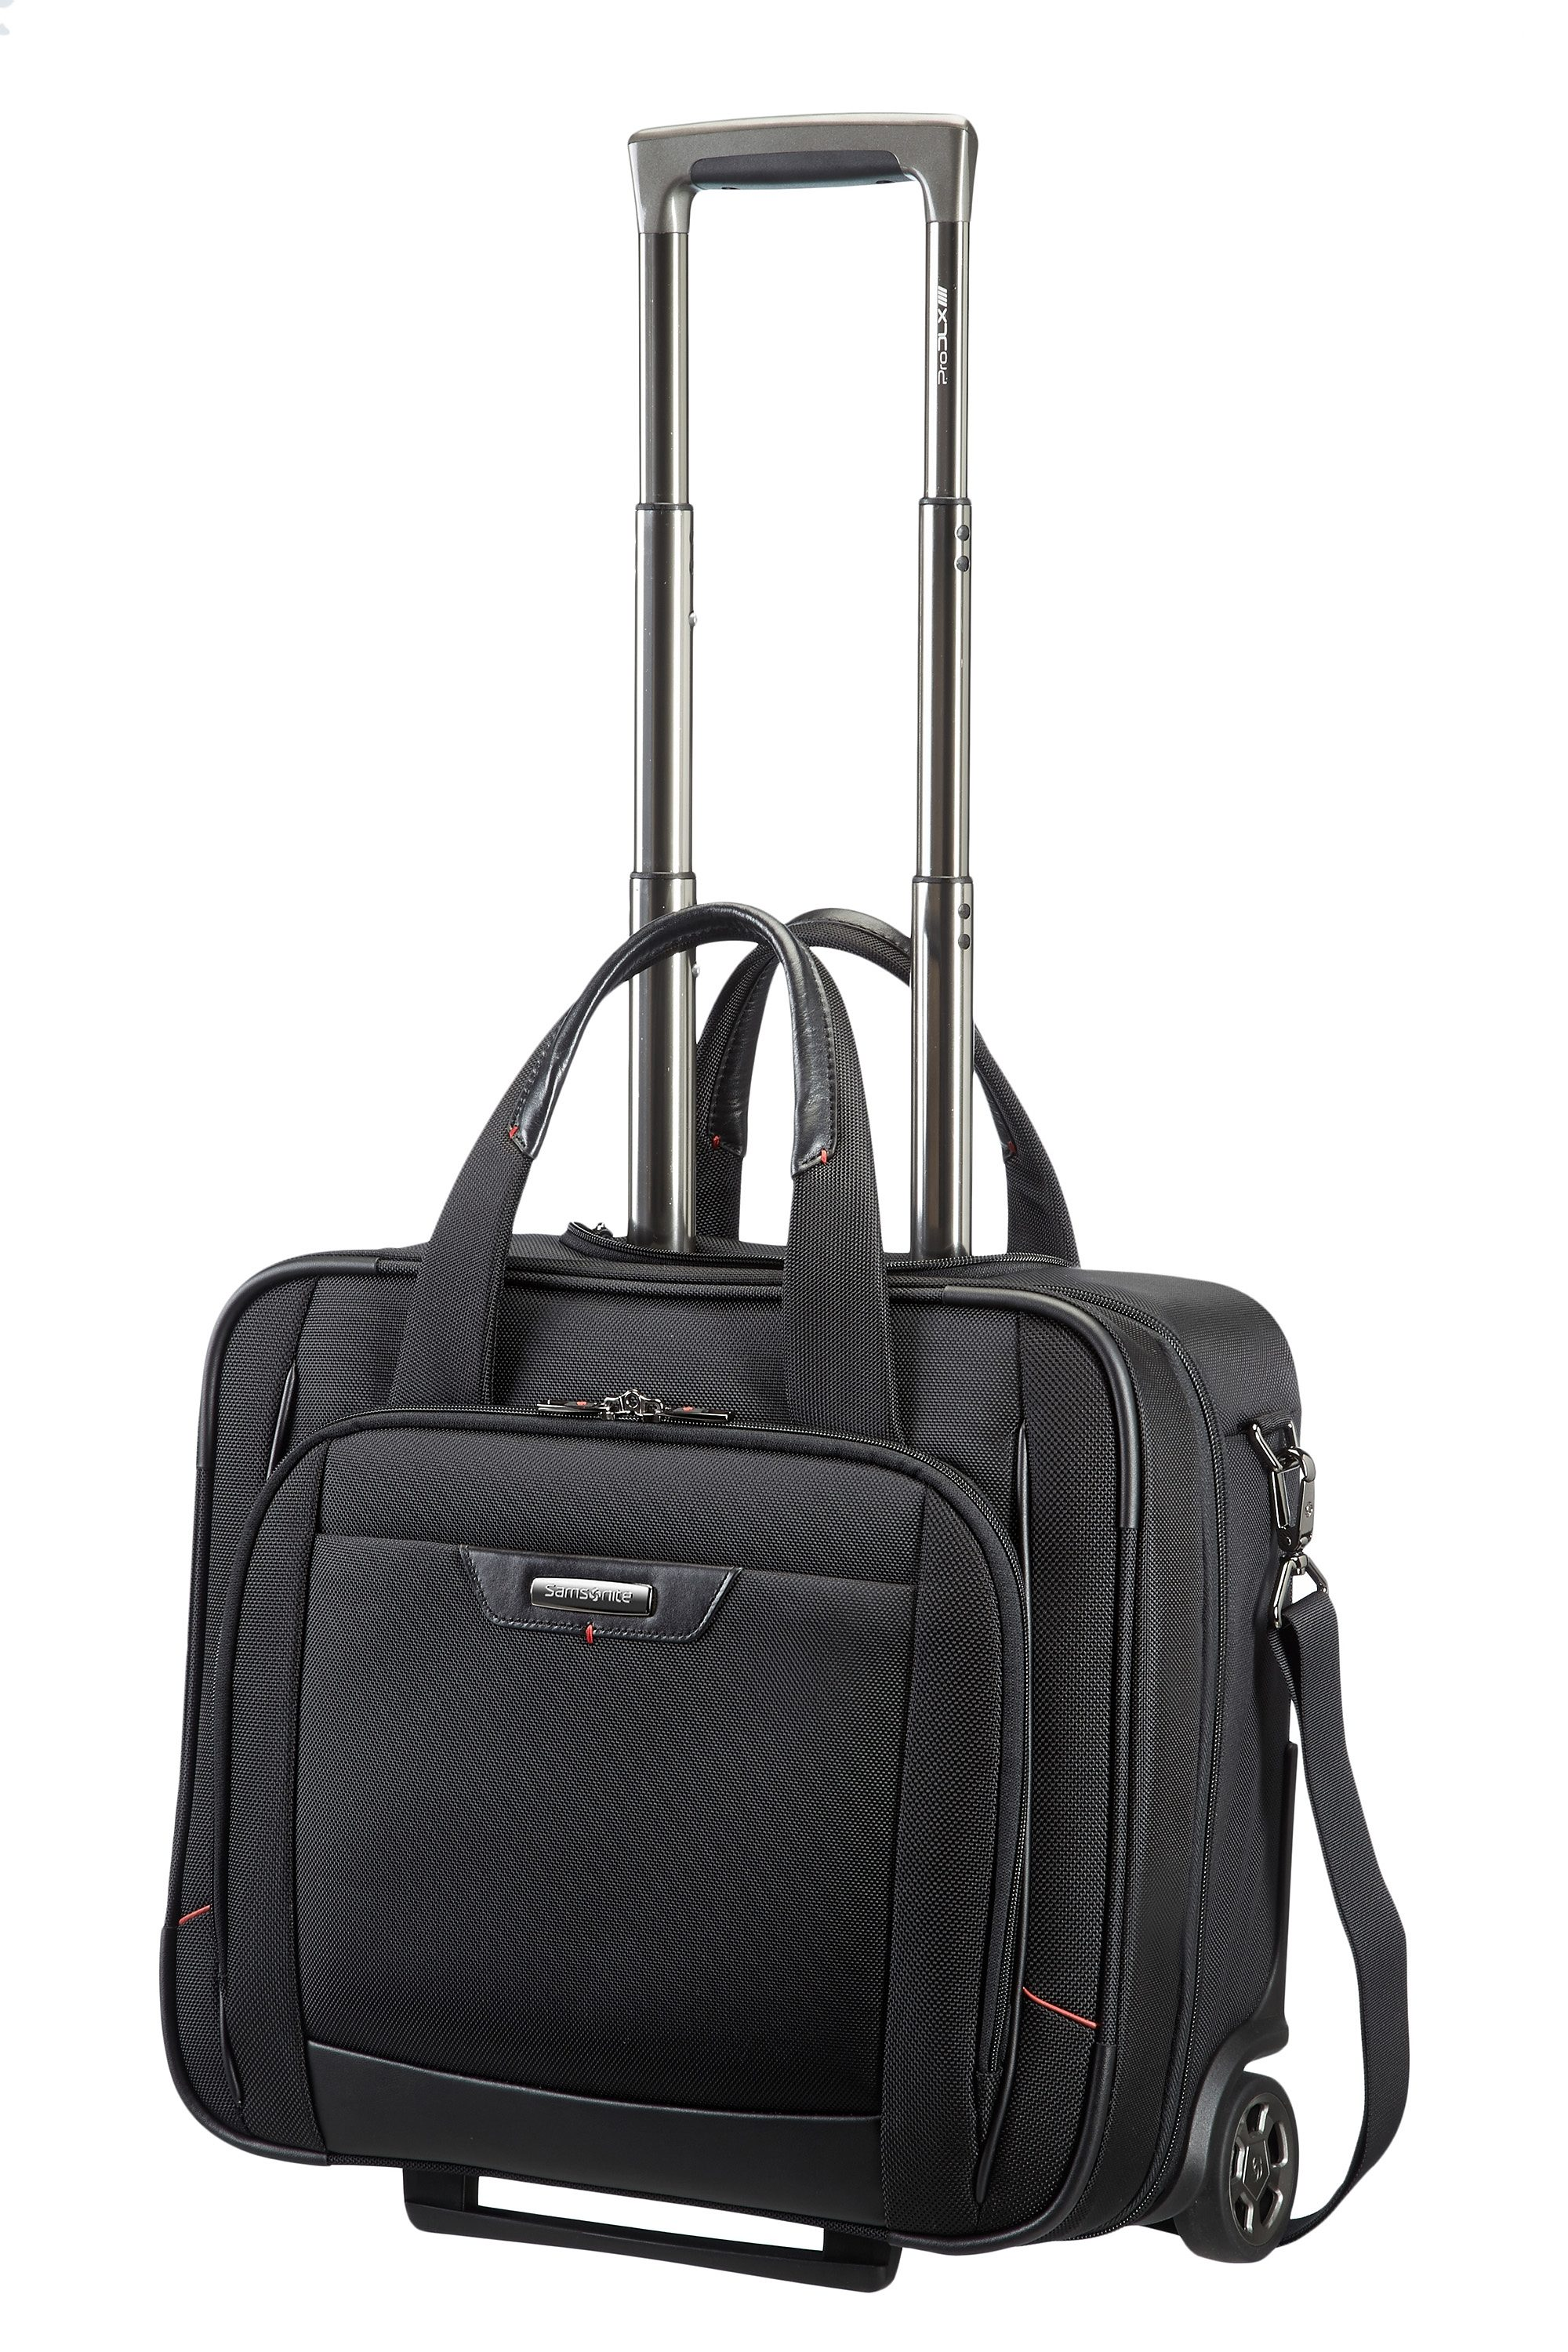 Samsonite Businesstrolley mit 2 Rollen, Schultergurt, Tablet- und Laptopfach, »Pro-DLX 4«